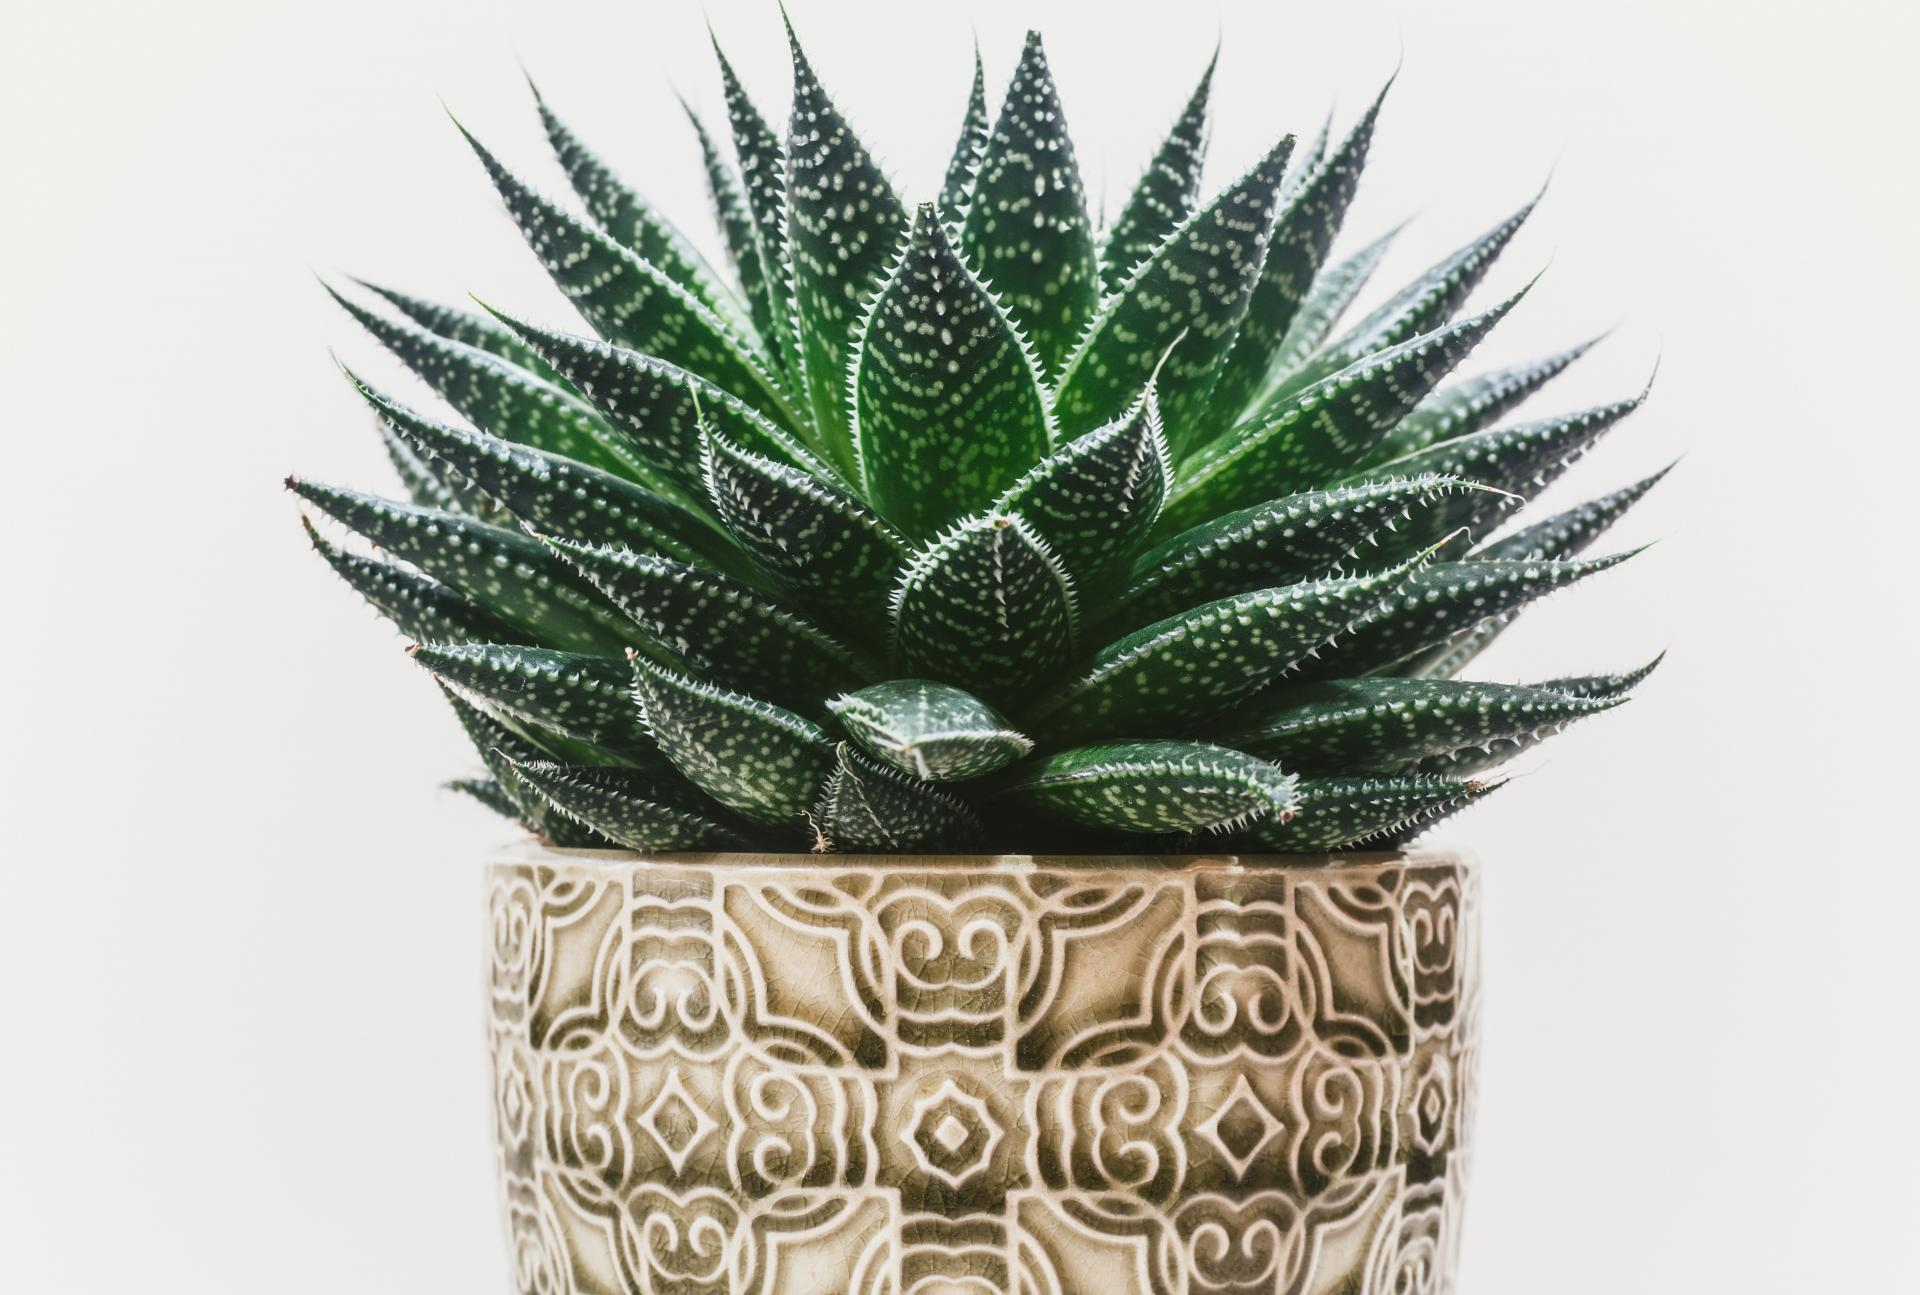 4 Benefits to Having House Plants in Your Apartment | Red ... on ornamental grasses red, nature red, flowers red, berries red, cactus red, peppers red, pots red, orchids red, design red, mums red, animals red,